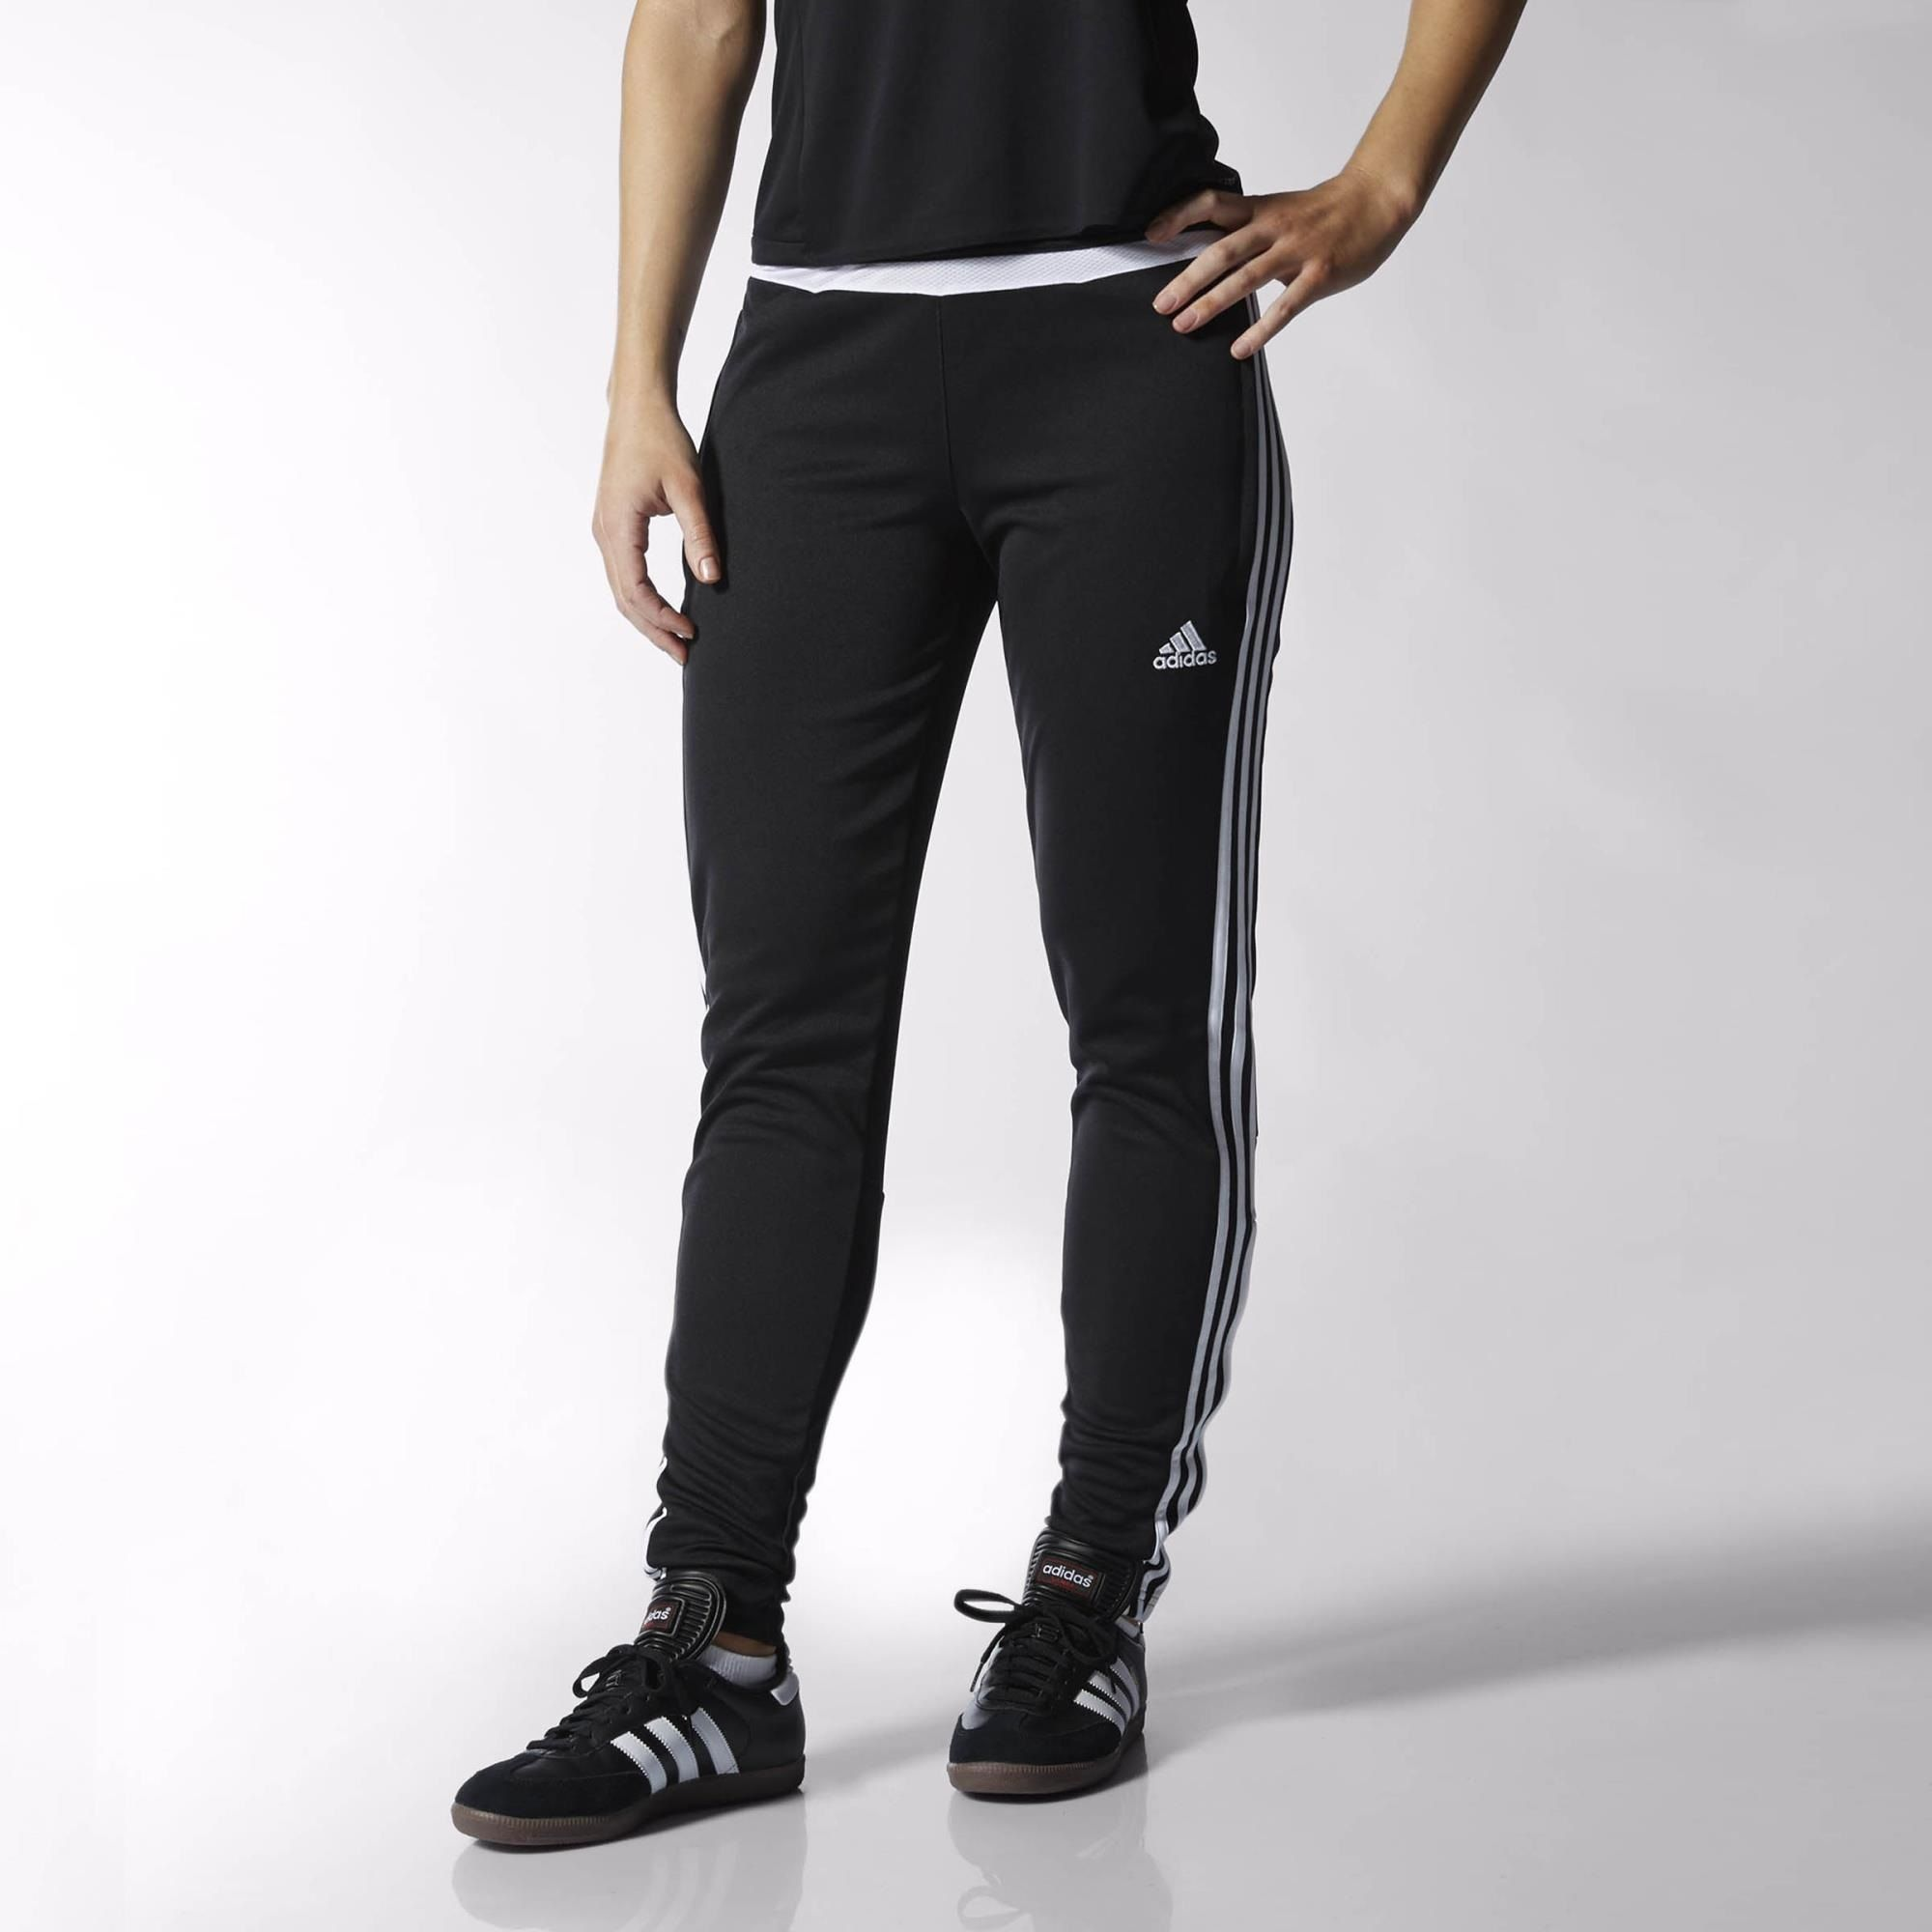 adidas women's performance no fuss pants on the ground